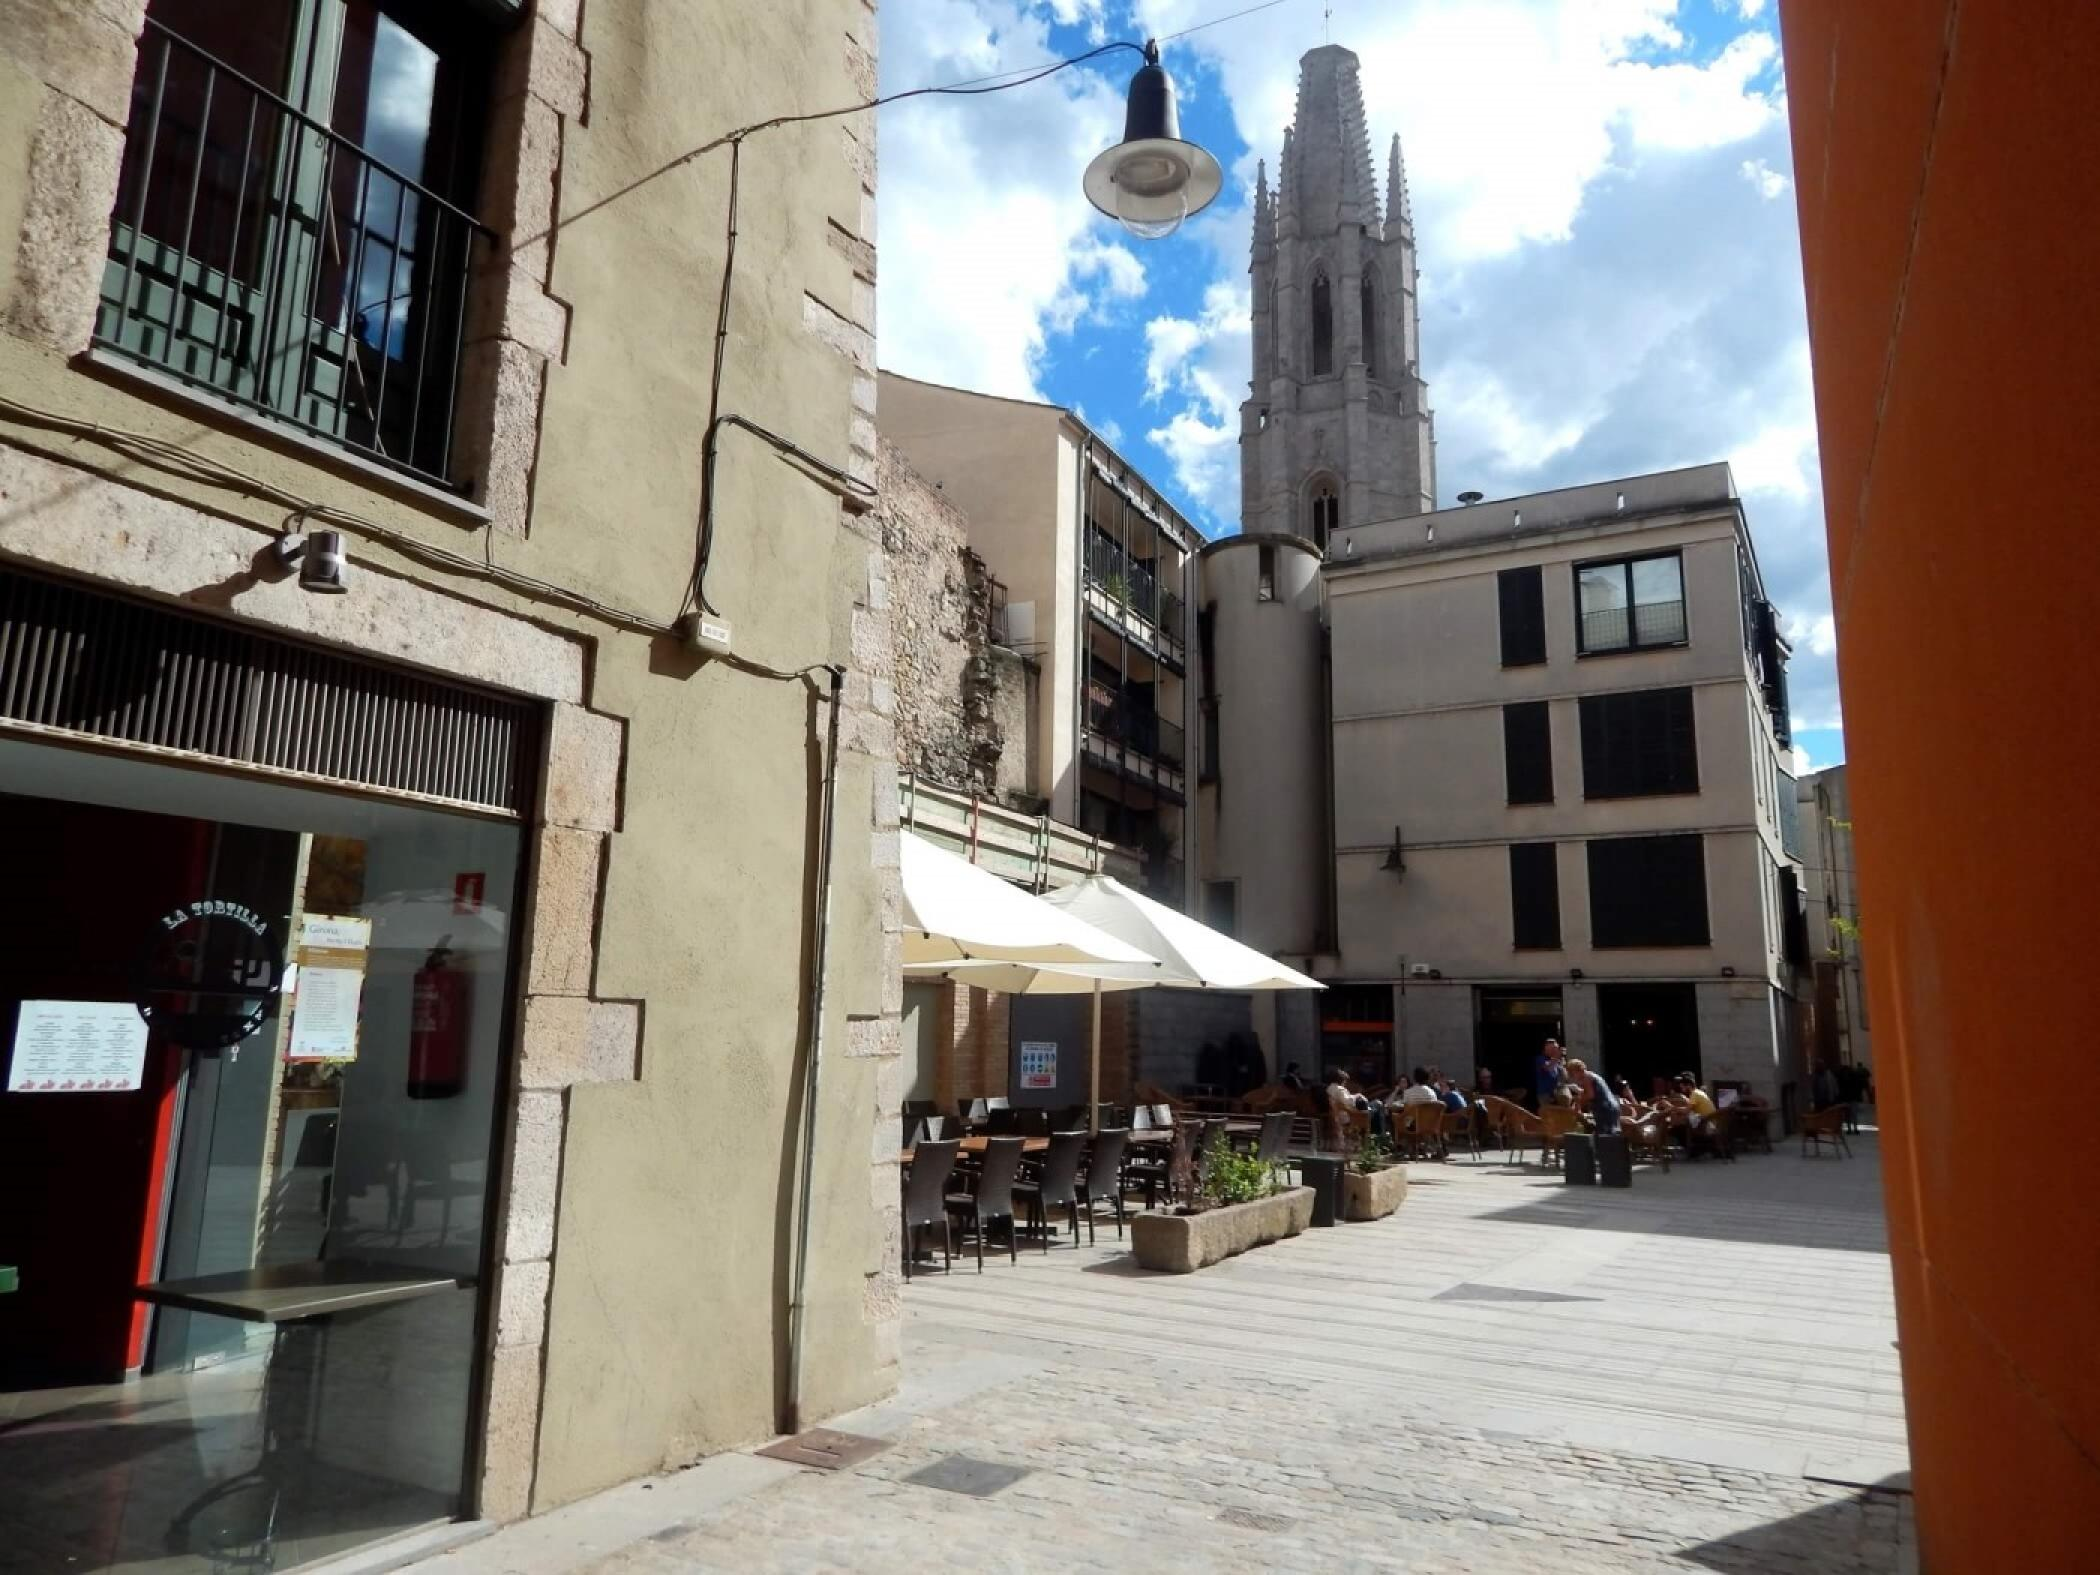 Rent Apartment in Girona - Girona Pou Rodó 22 - 17